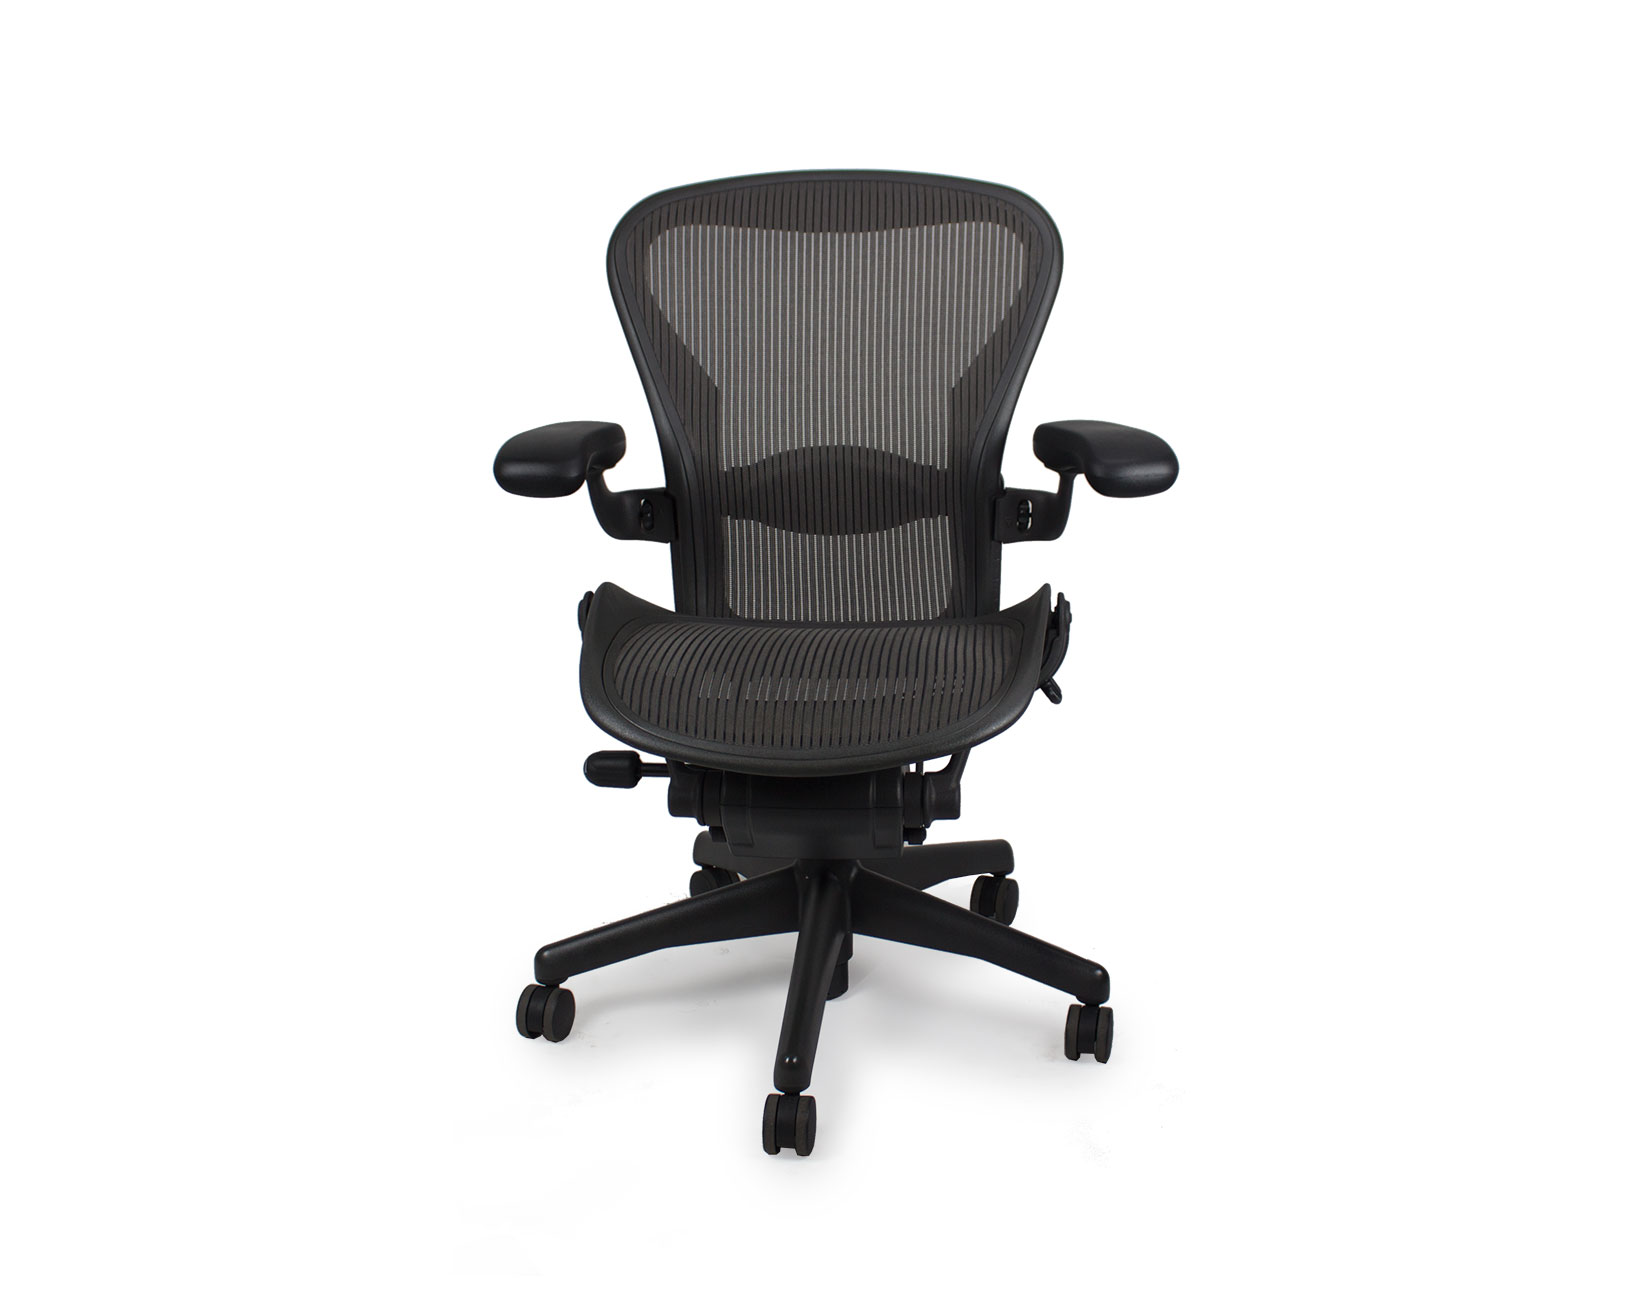 Used Herman Miller Aeron Chair Graphite Frame Classic Lead Pellicle Mesh Office